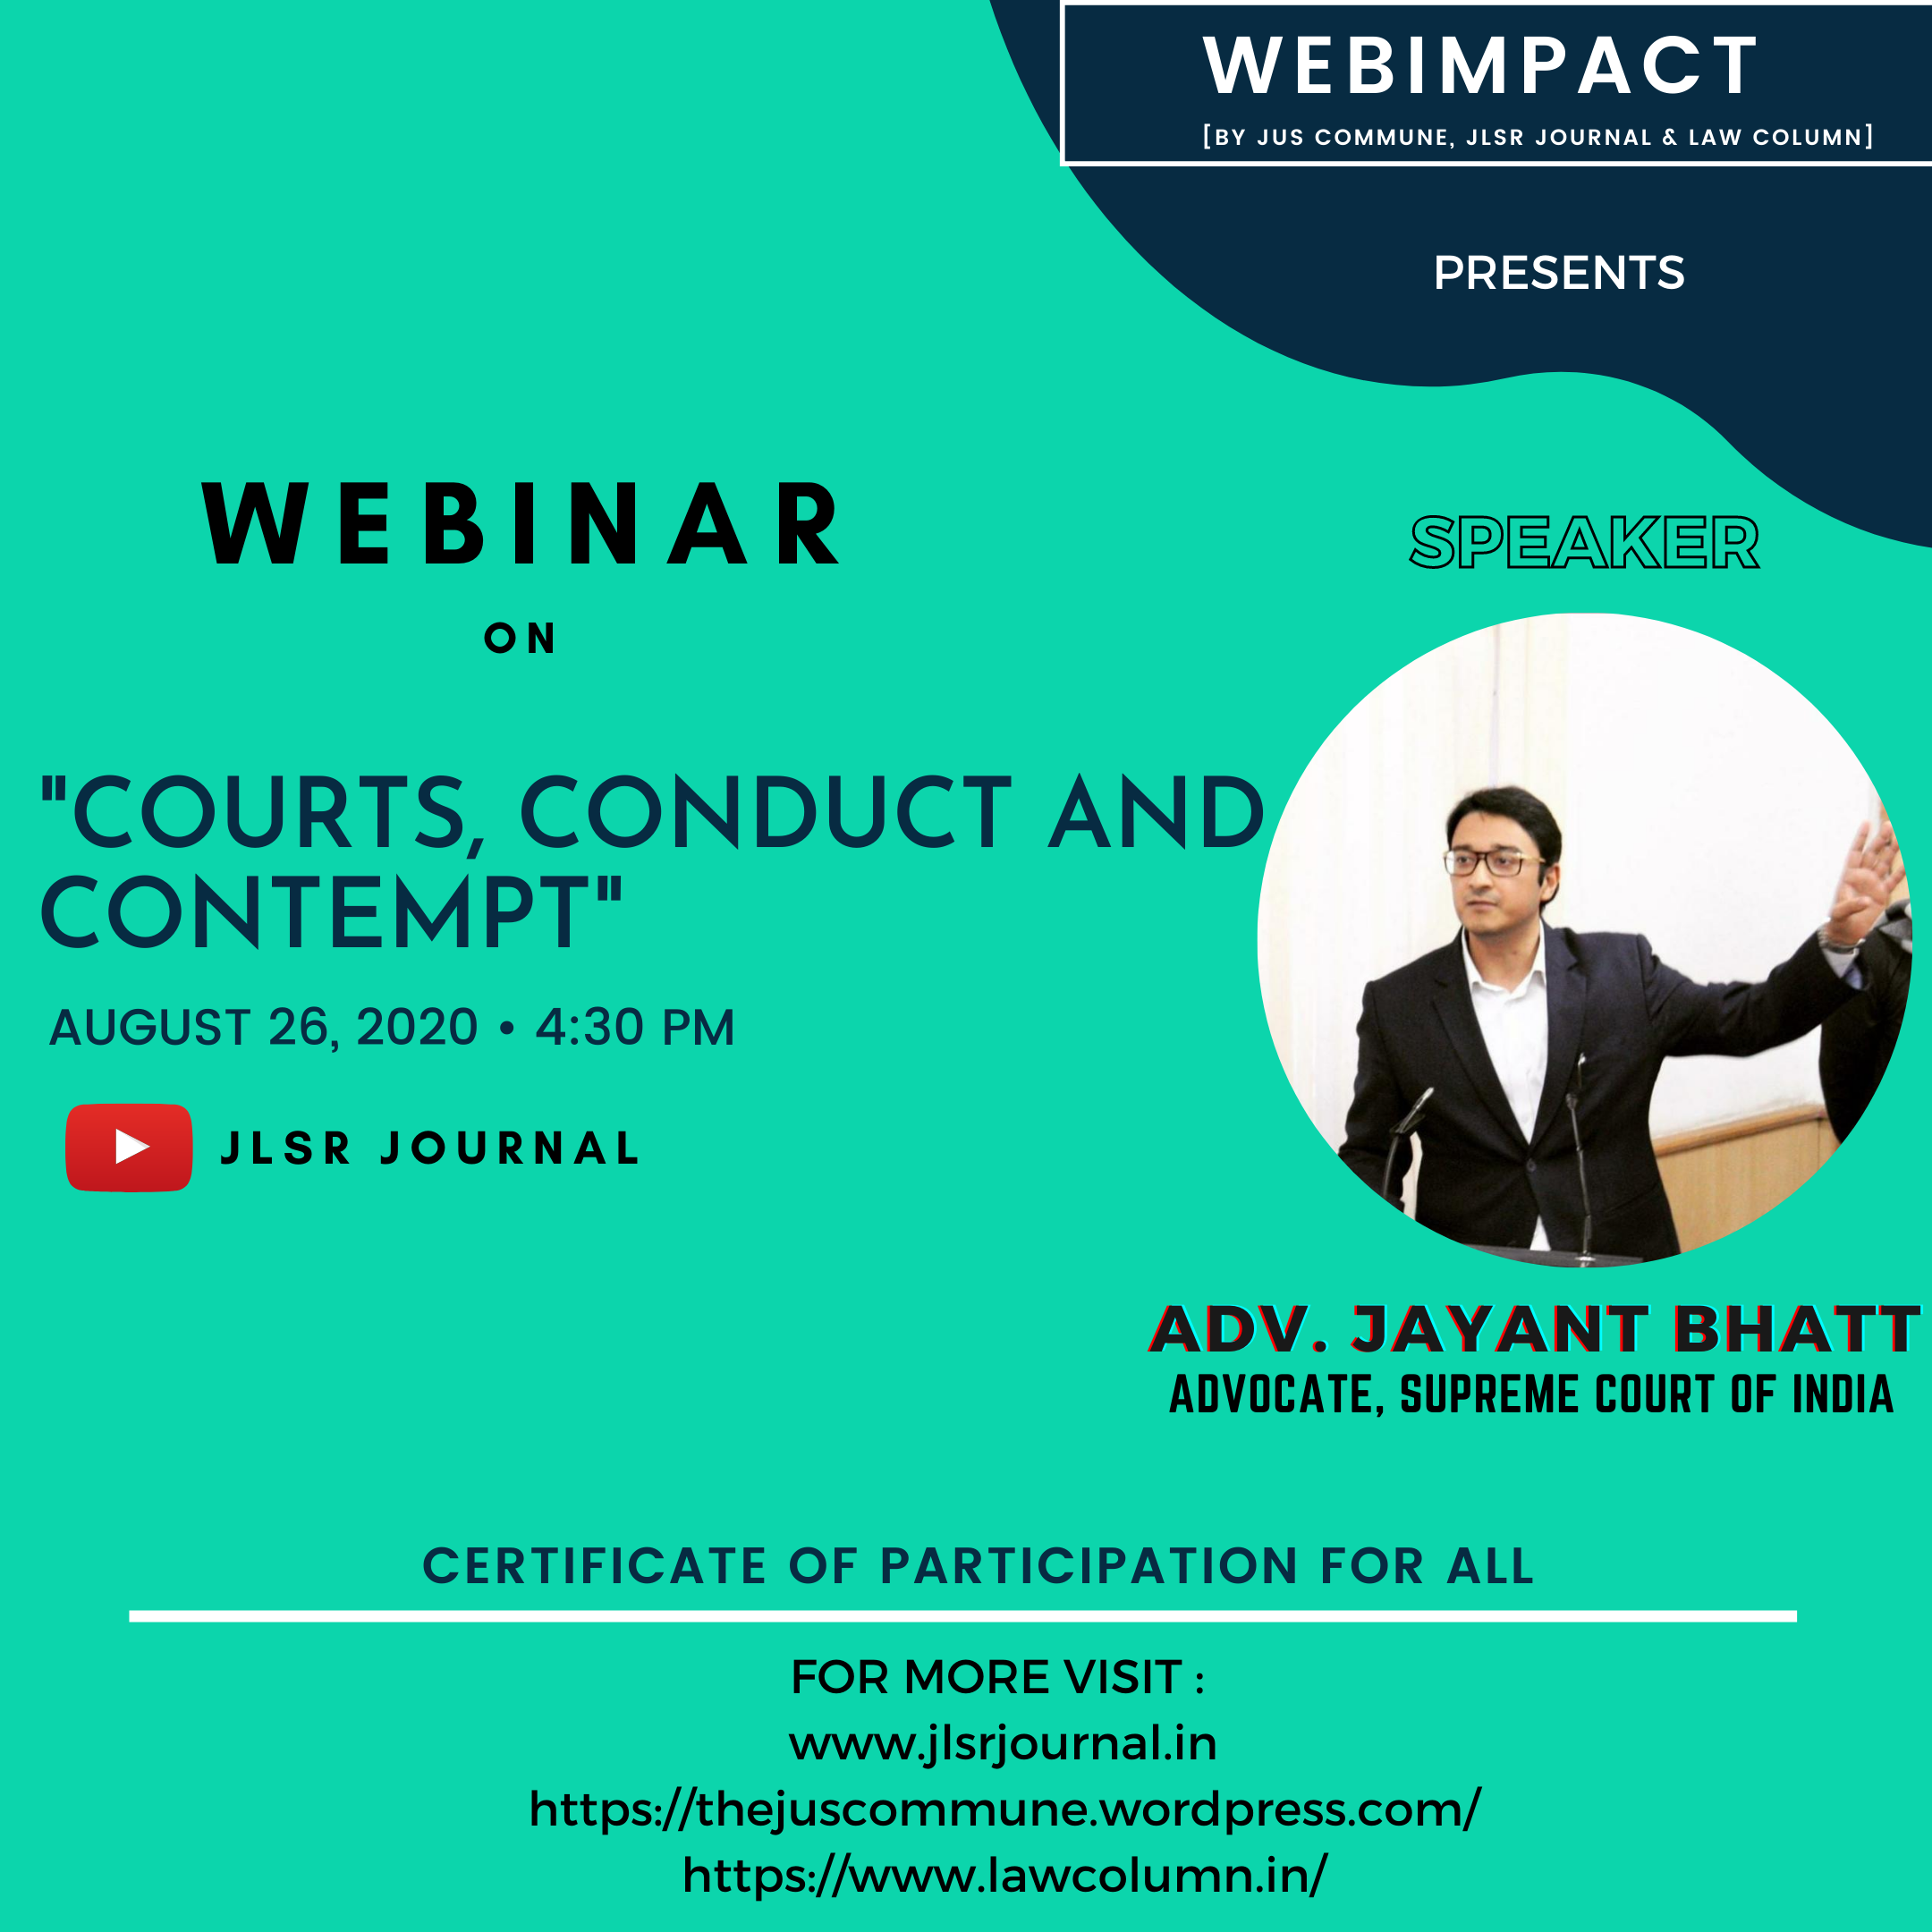 """WEBIMPACT'S WEBINAR ON """"COURT, CONDUCT AND CONTEMPT"""" : REGISTER NOW!!!"""